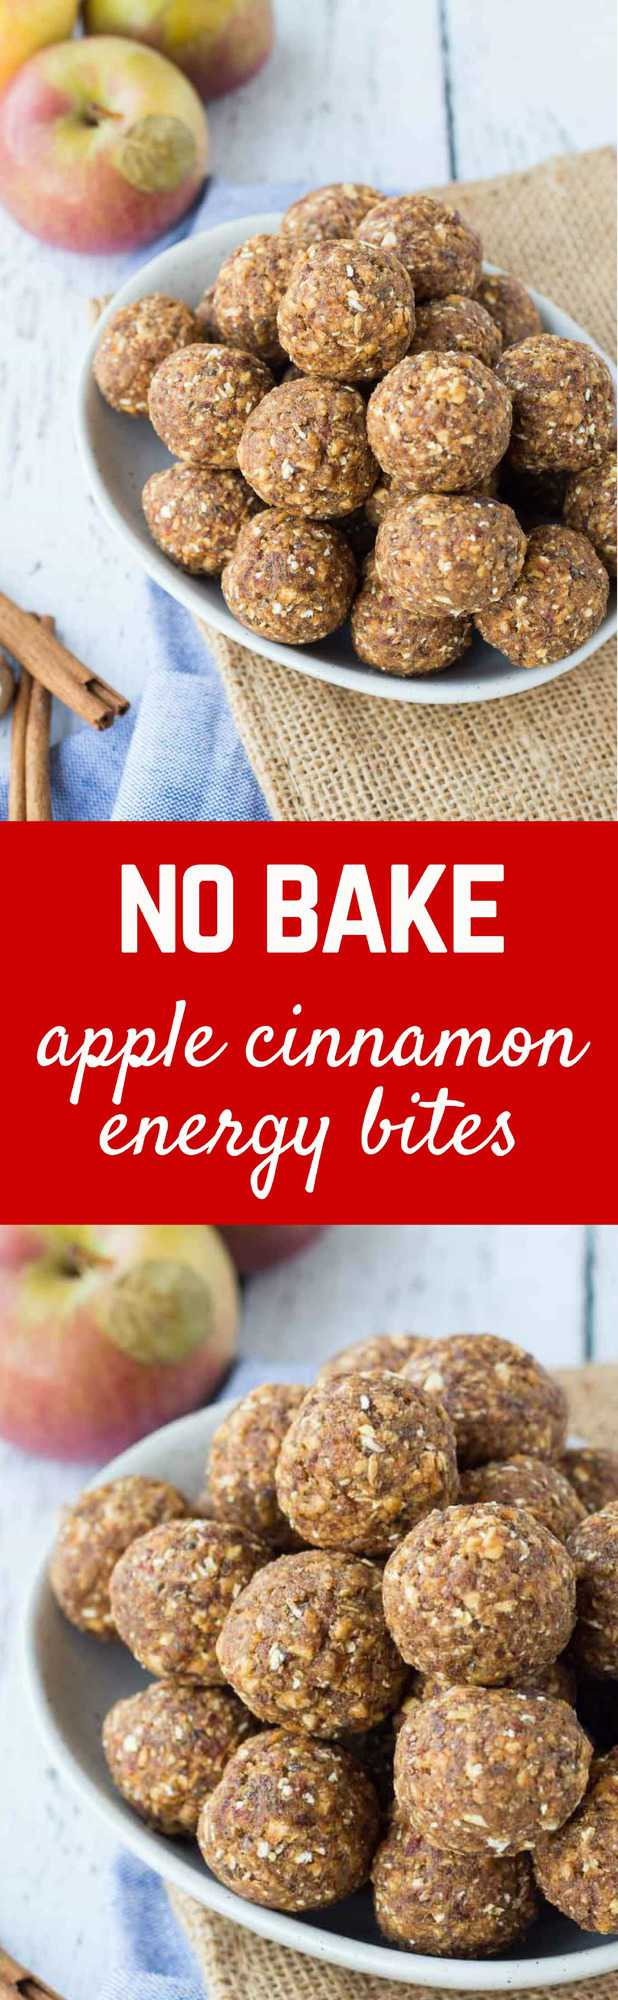 These apple cinnamon no bake energy bites are fun, filling, and could not be any easier to make. They're great for school lunch boxes, too! Get the easy and fun recipe on RachelCooks.com!